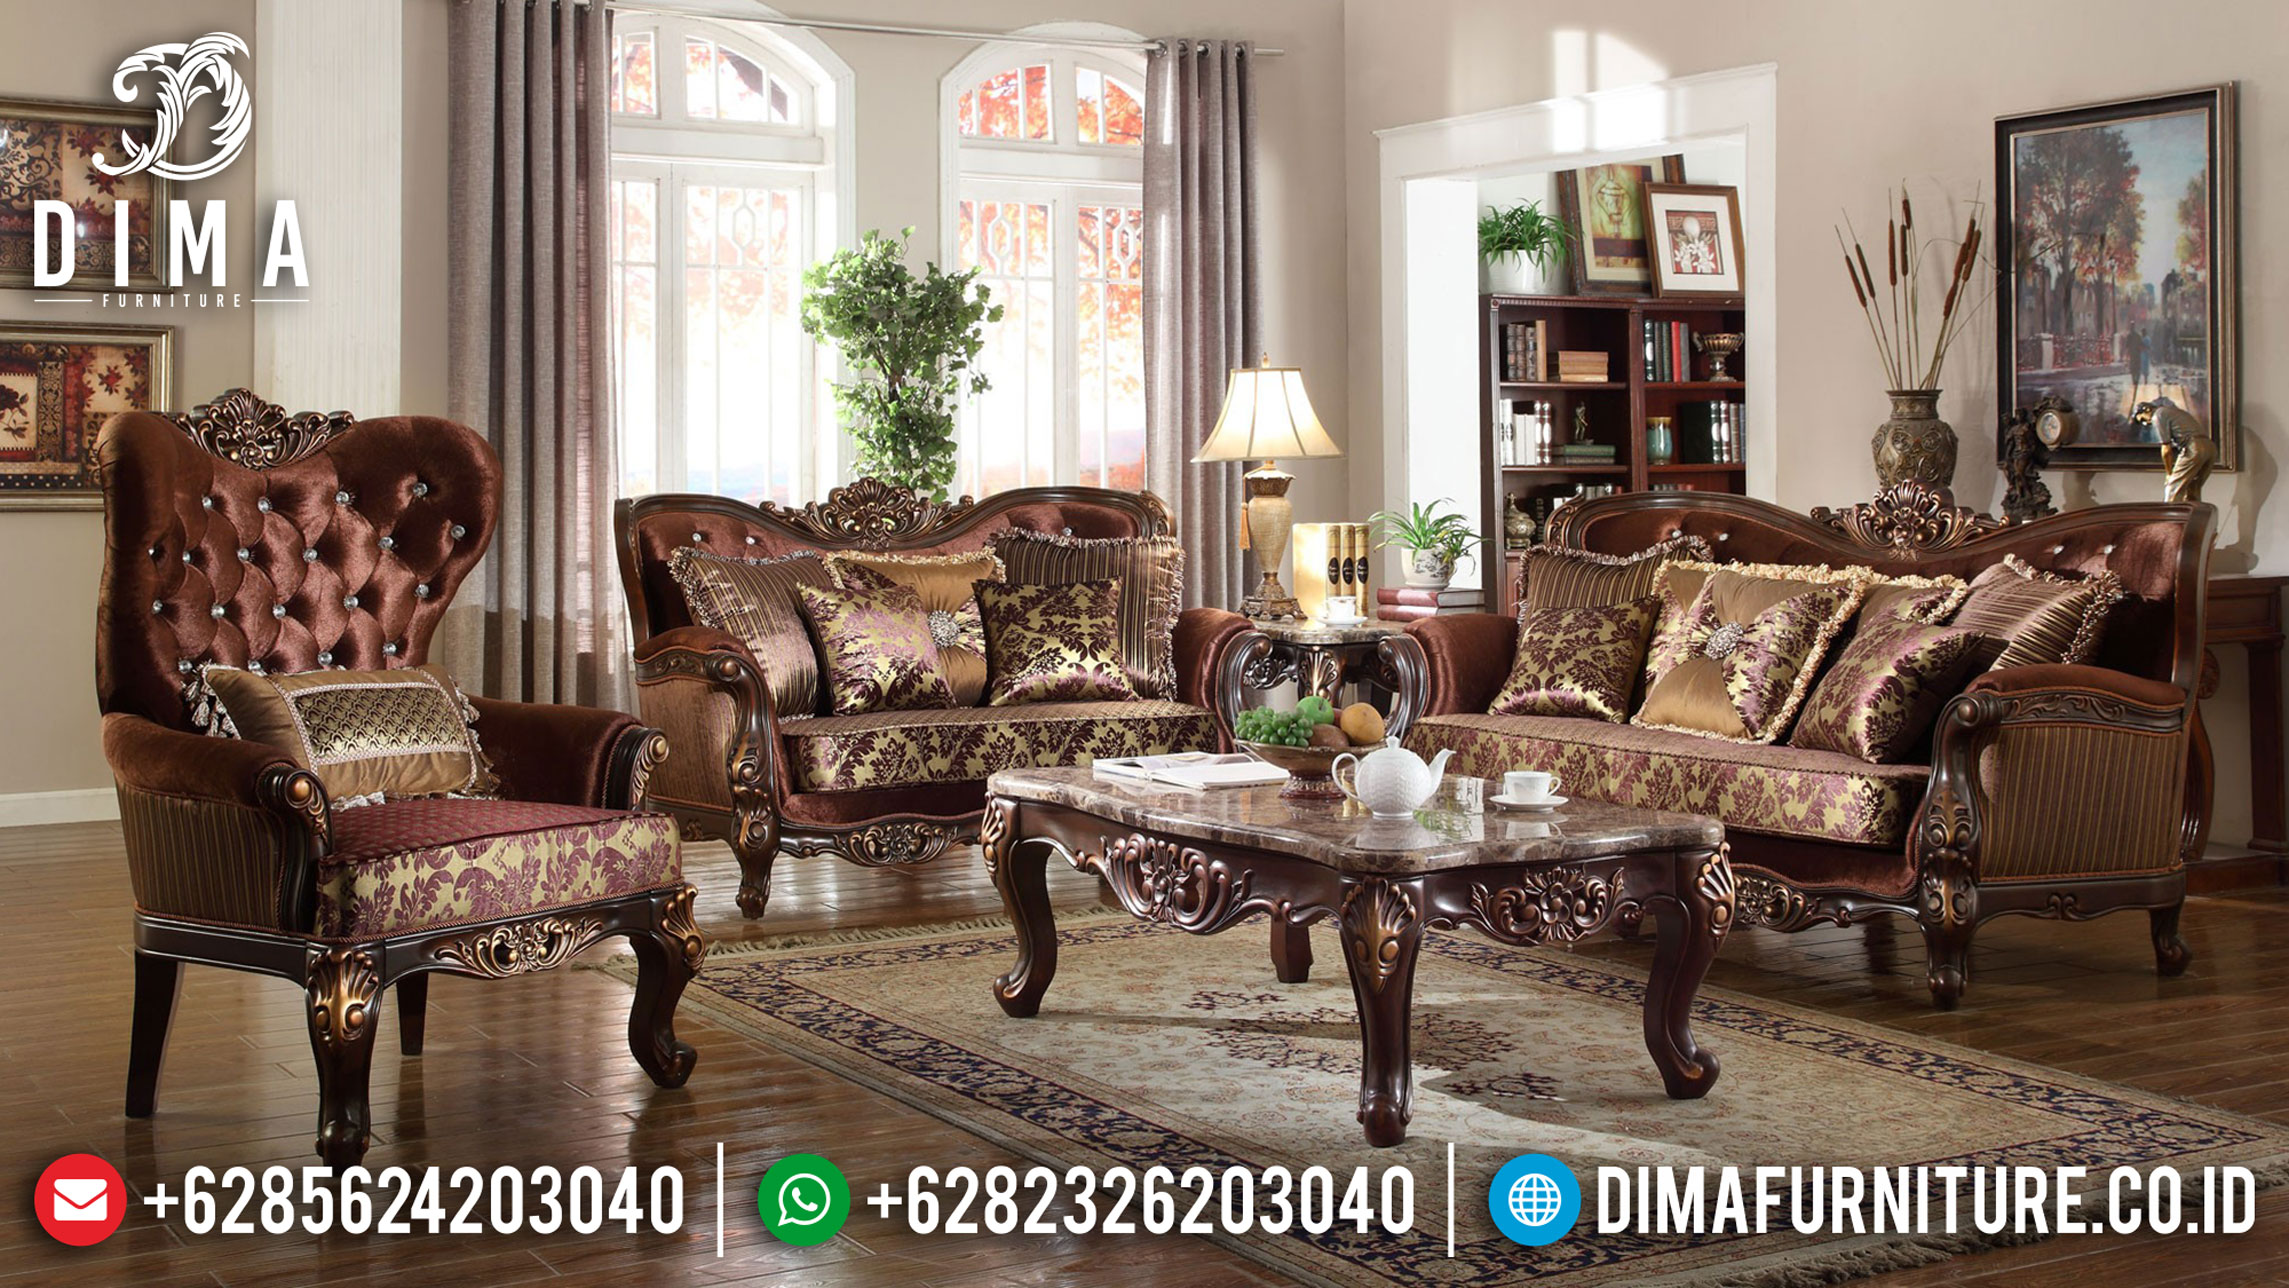 Kamasean Sofa Tamu Mewah Natural Combine Luxury Style Best Price BT-0857